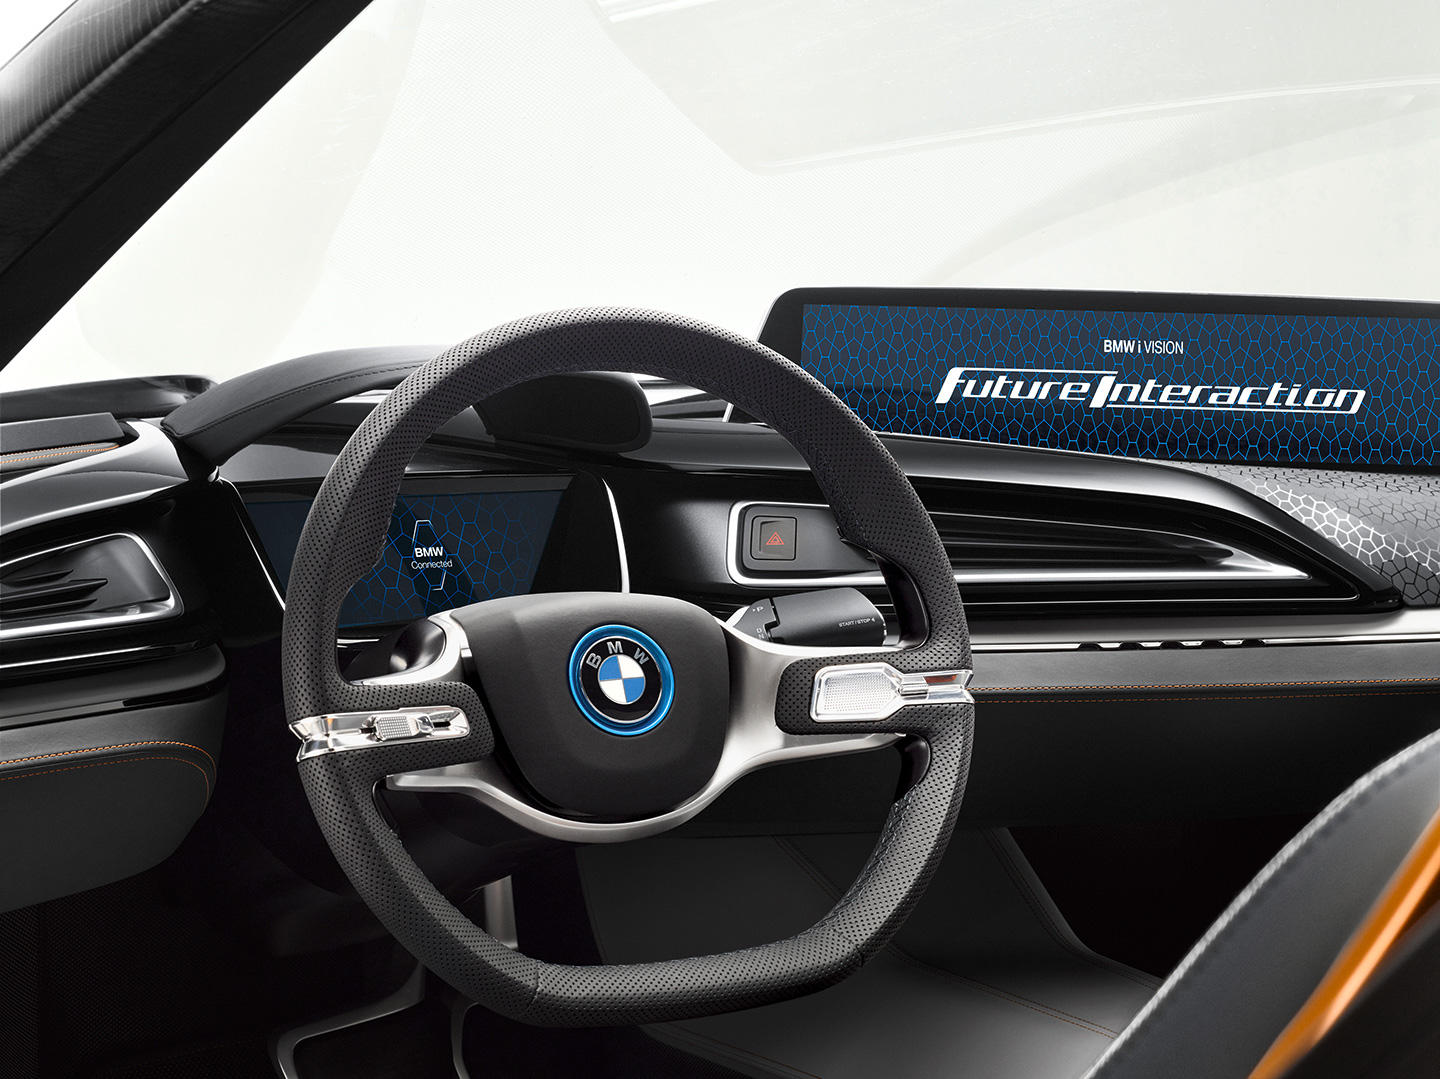 Bmw I Vision Future Interaction 07